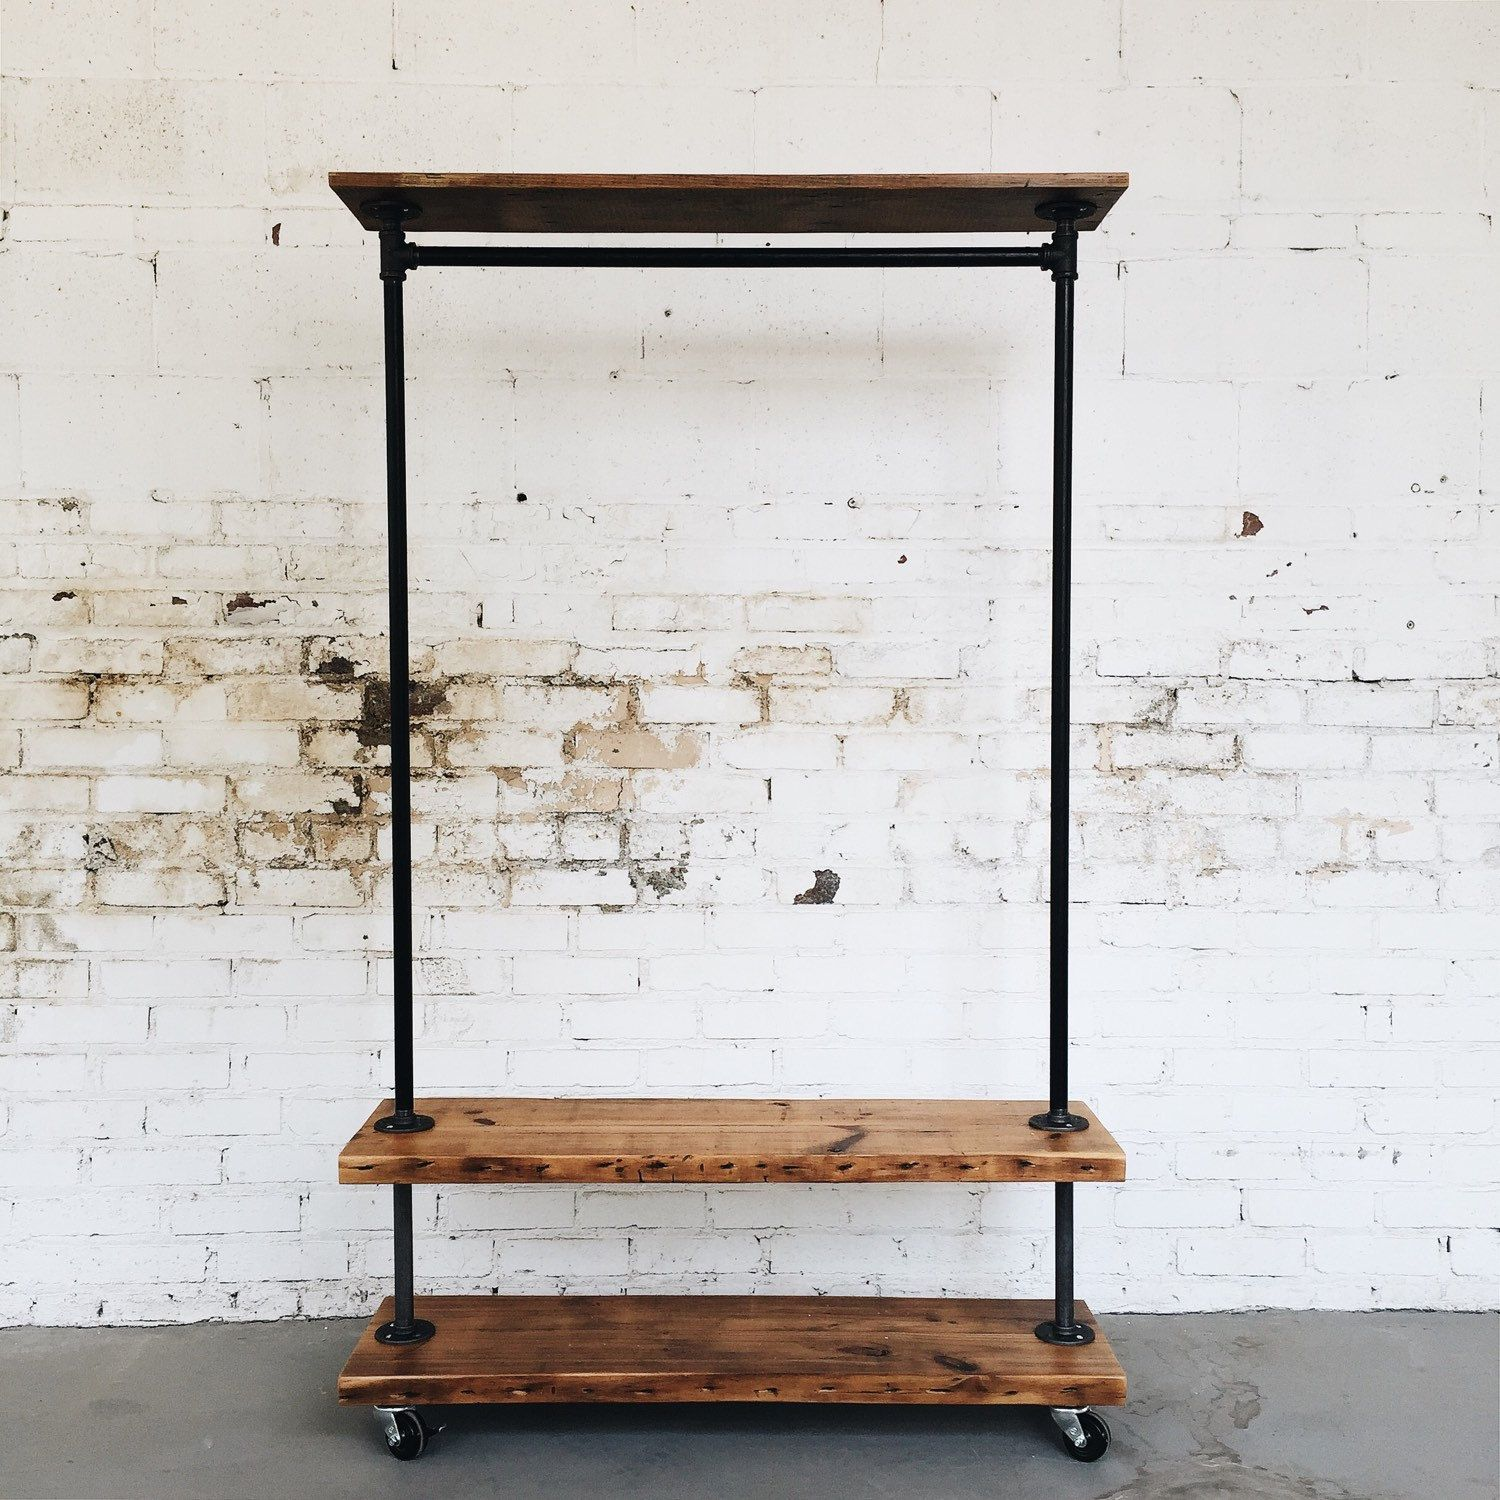 almira rolling garment rack industrial clothes racks los angeles by crash industrial supply 309 pinterest industrial garment racks and